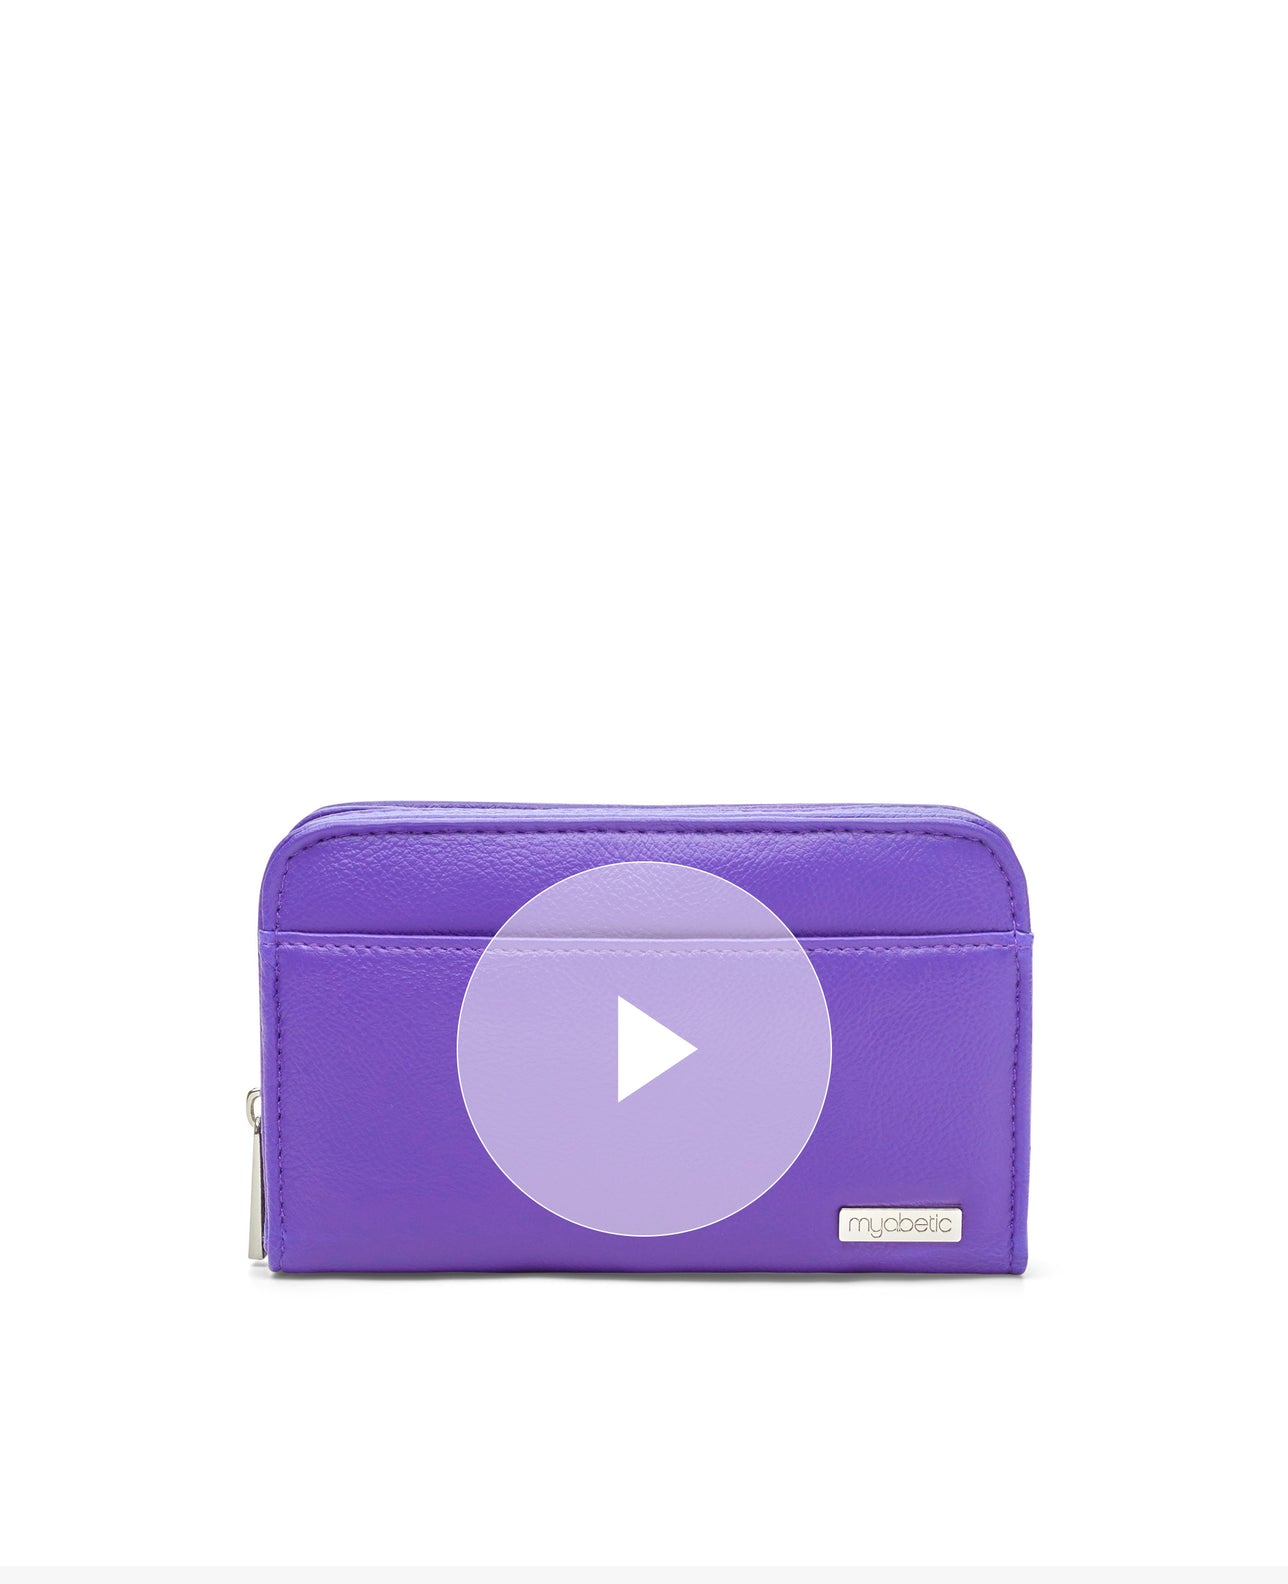 Color:Purple  https://player.vimeo.com/video/523970398